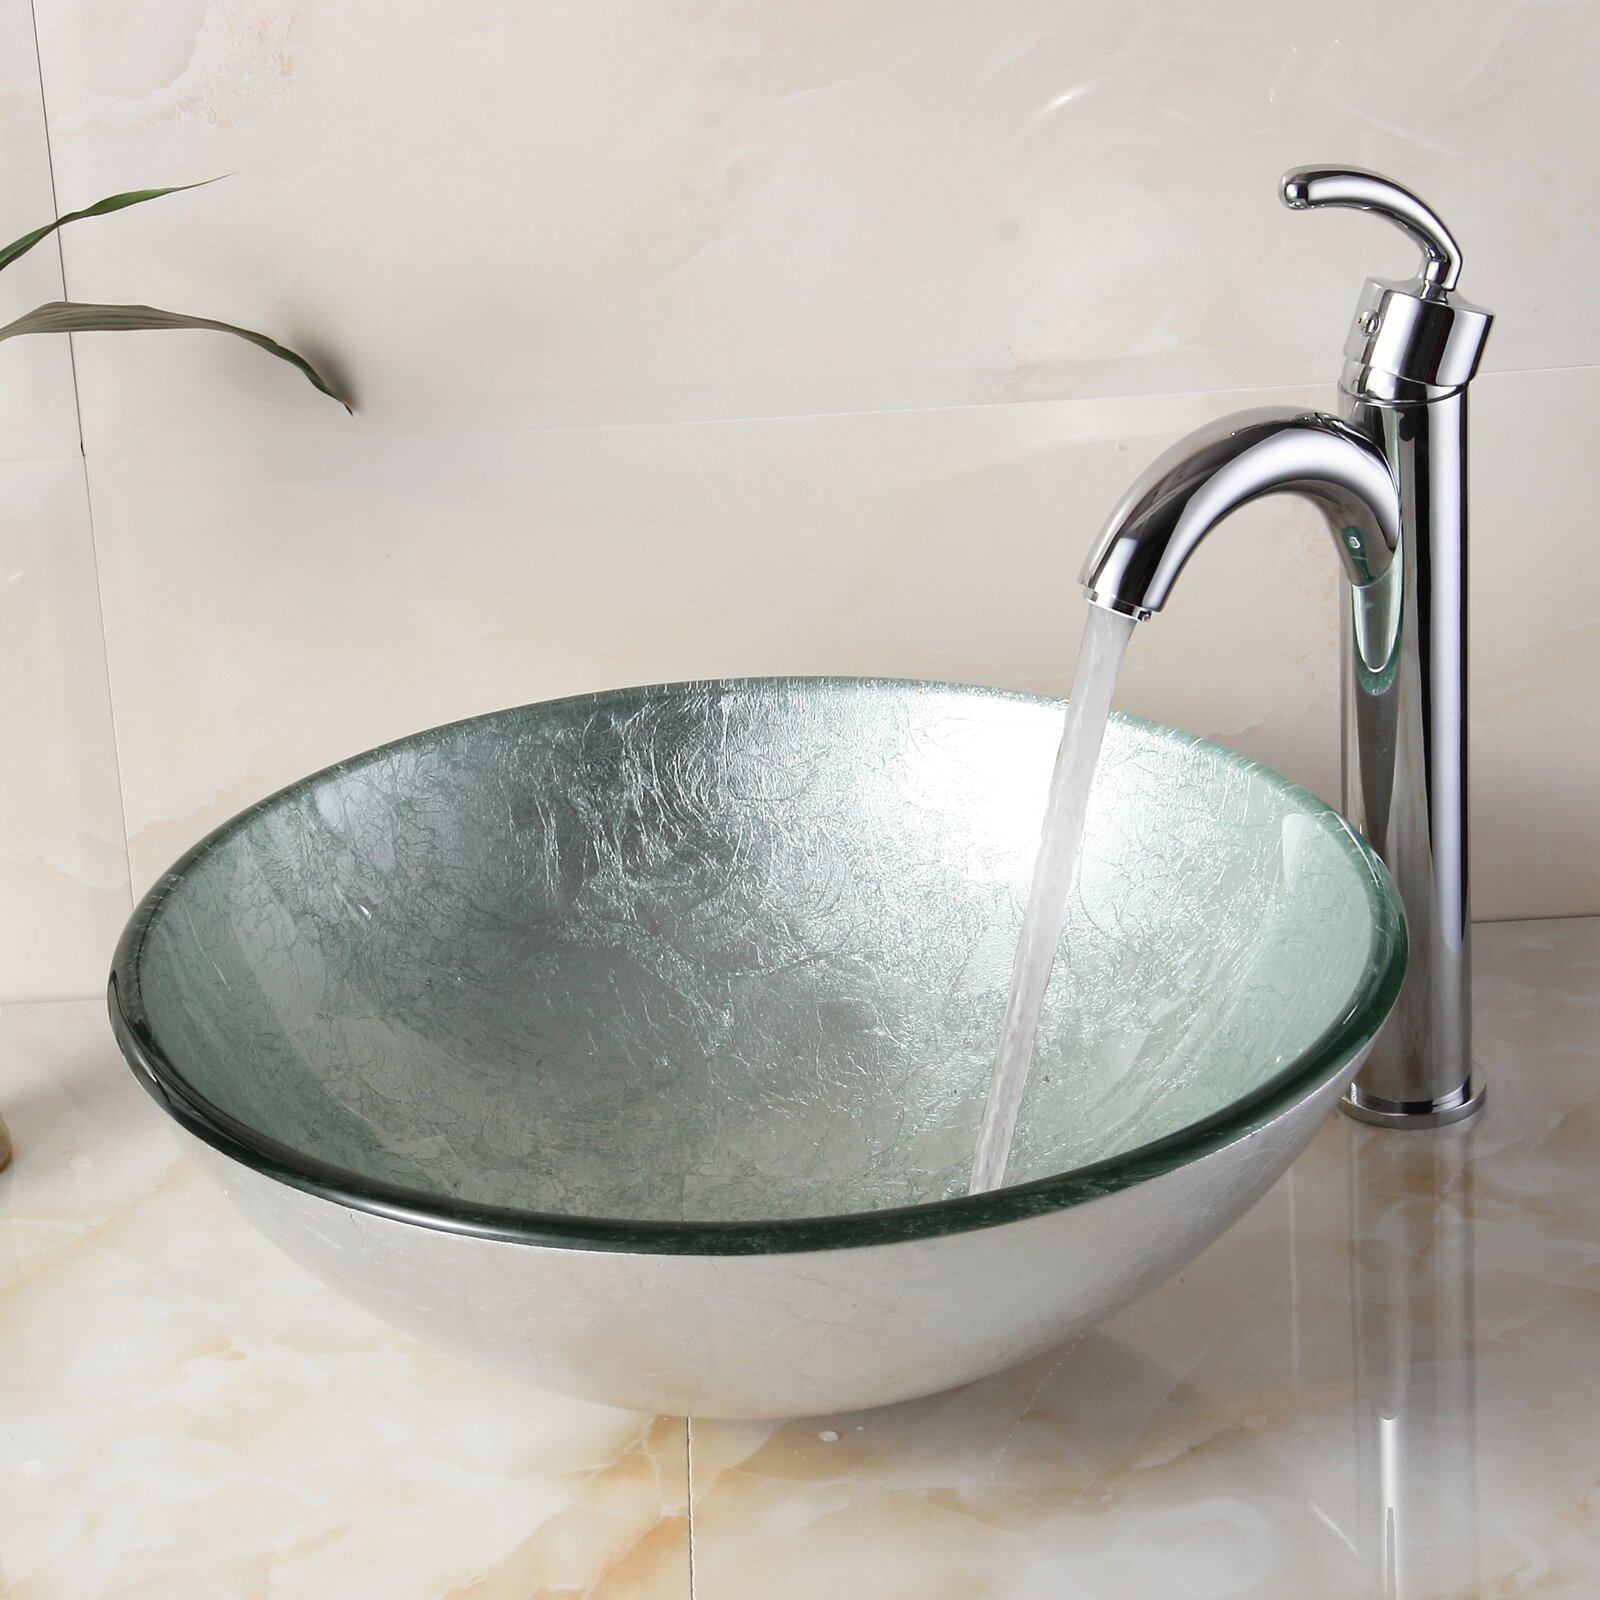 Bathroom Basin Bowls : Bathroom Sink Bowls Home Design Ideas Agemslife.com